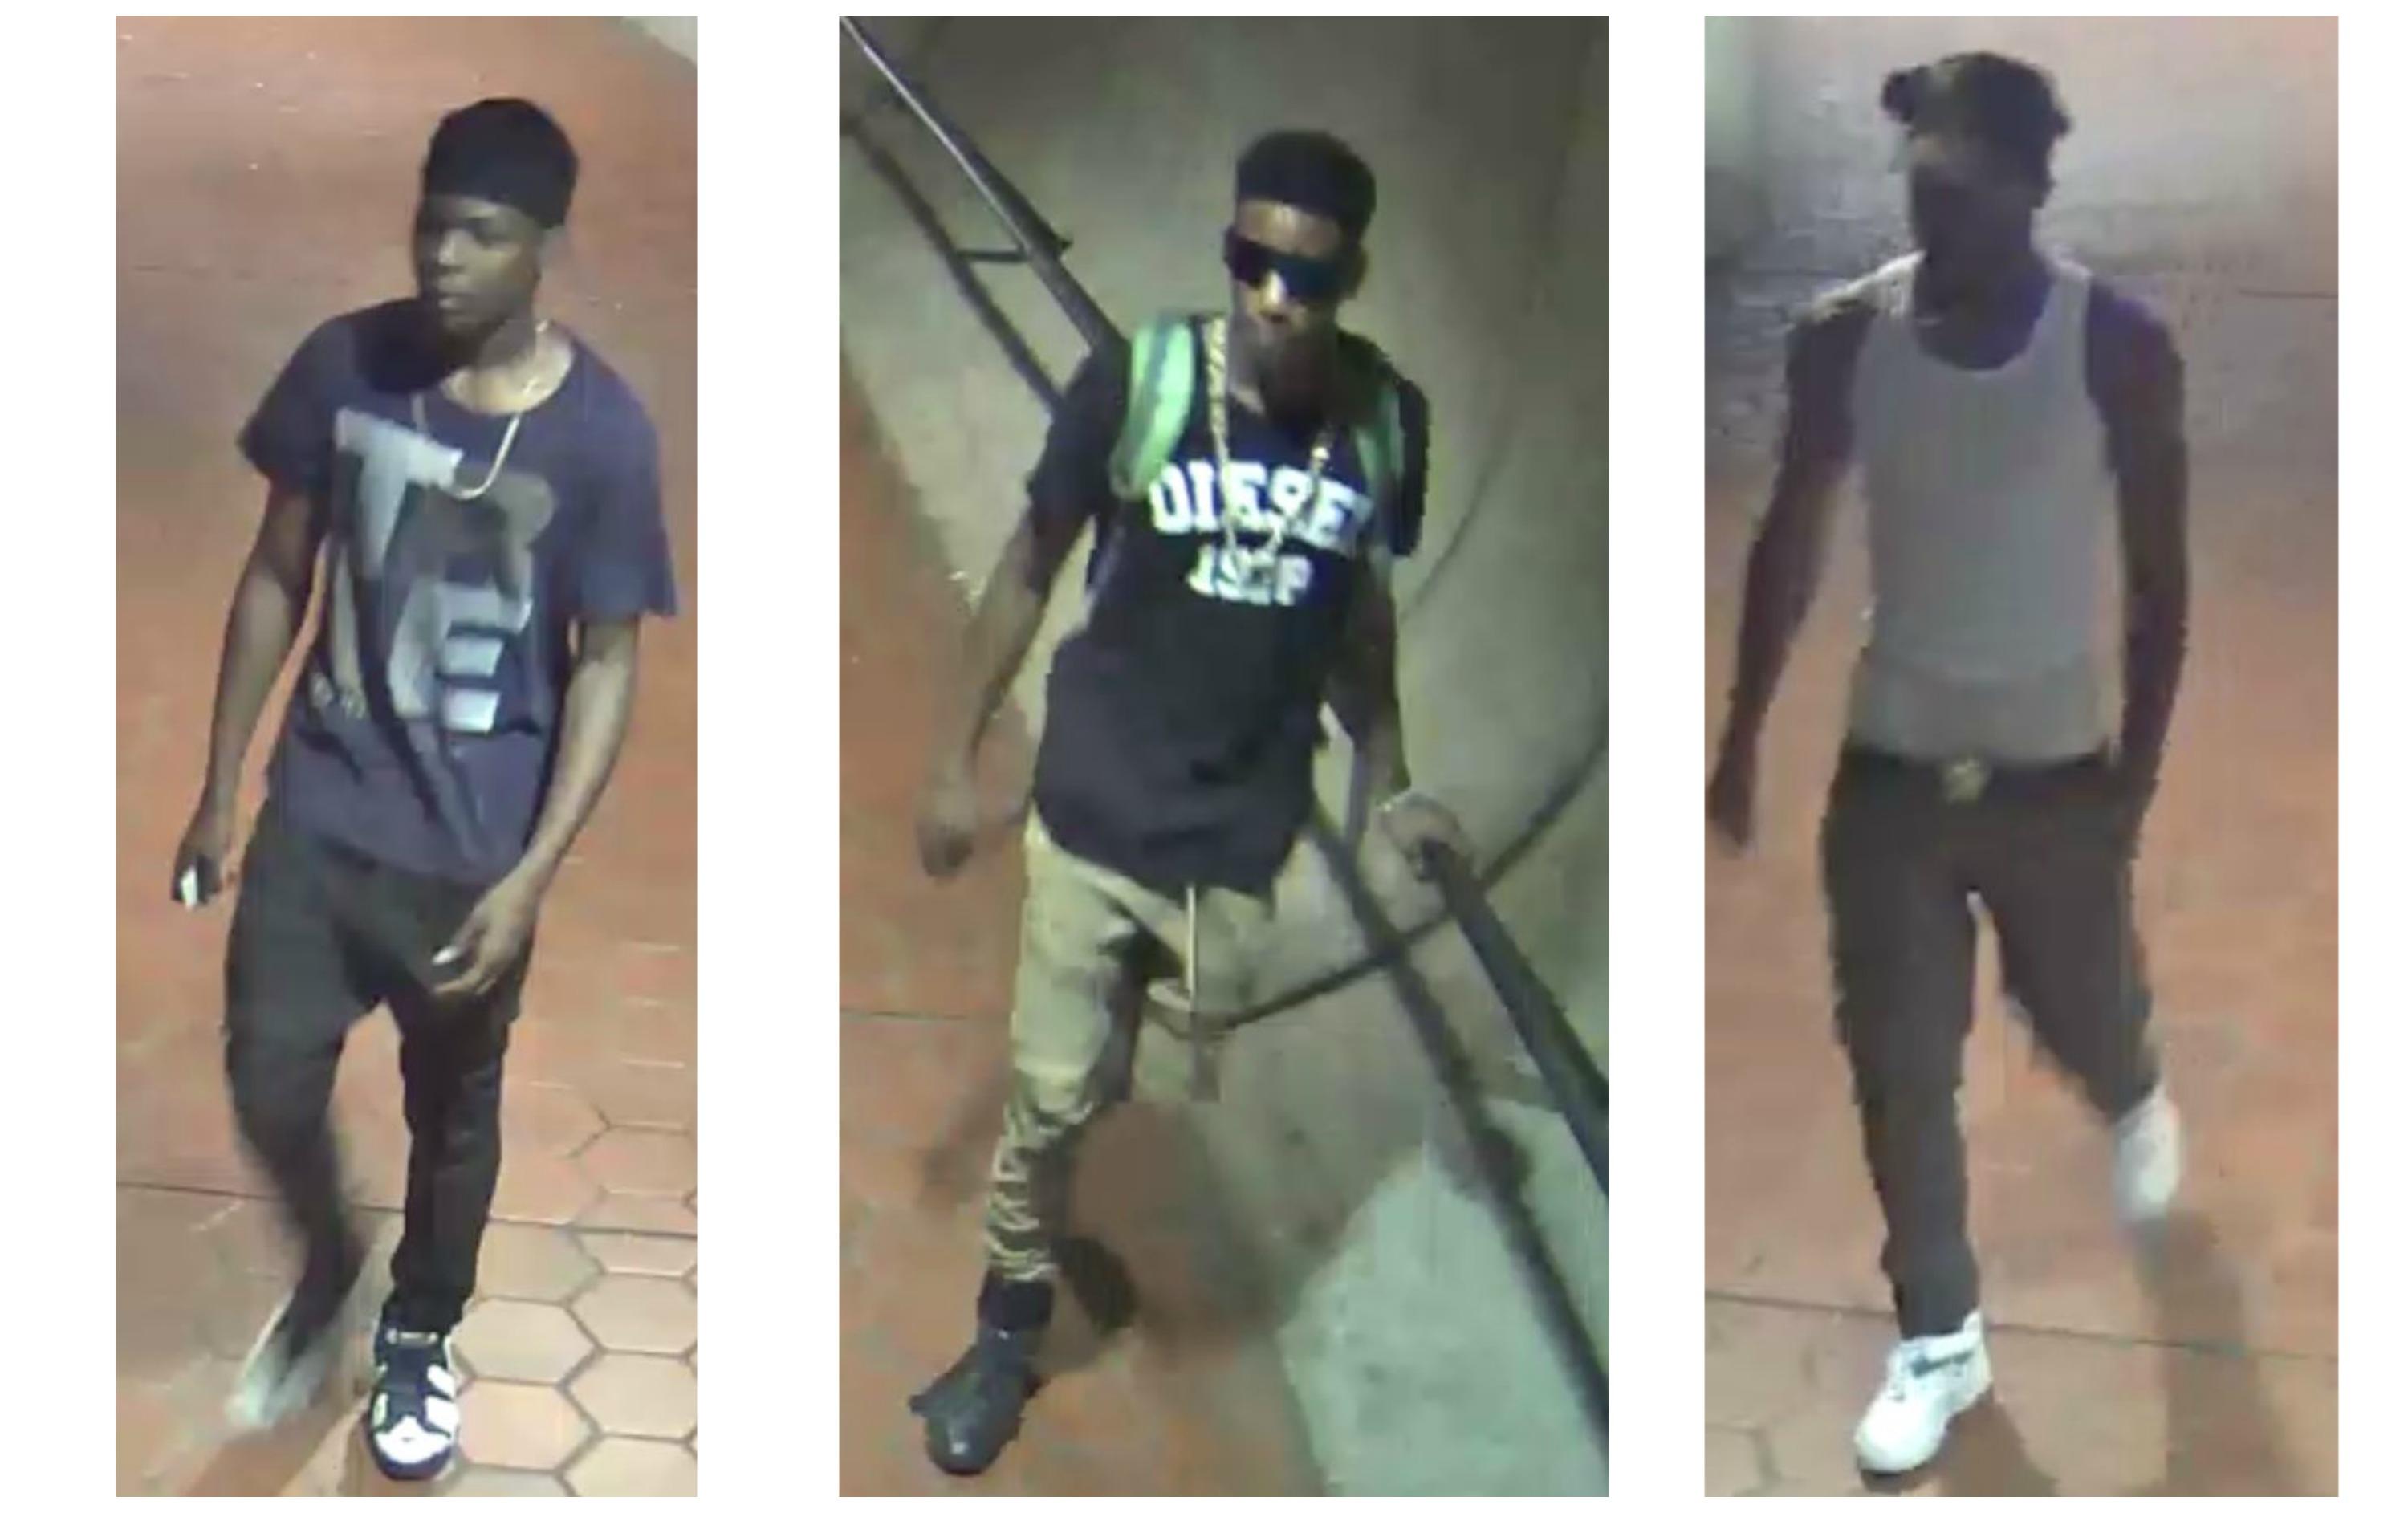 Persons of Interest in Metro Shooting (Courtesy: Metro Transit Police)